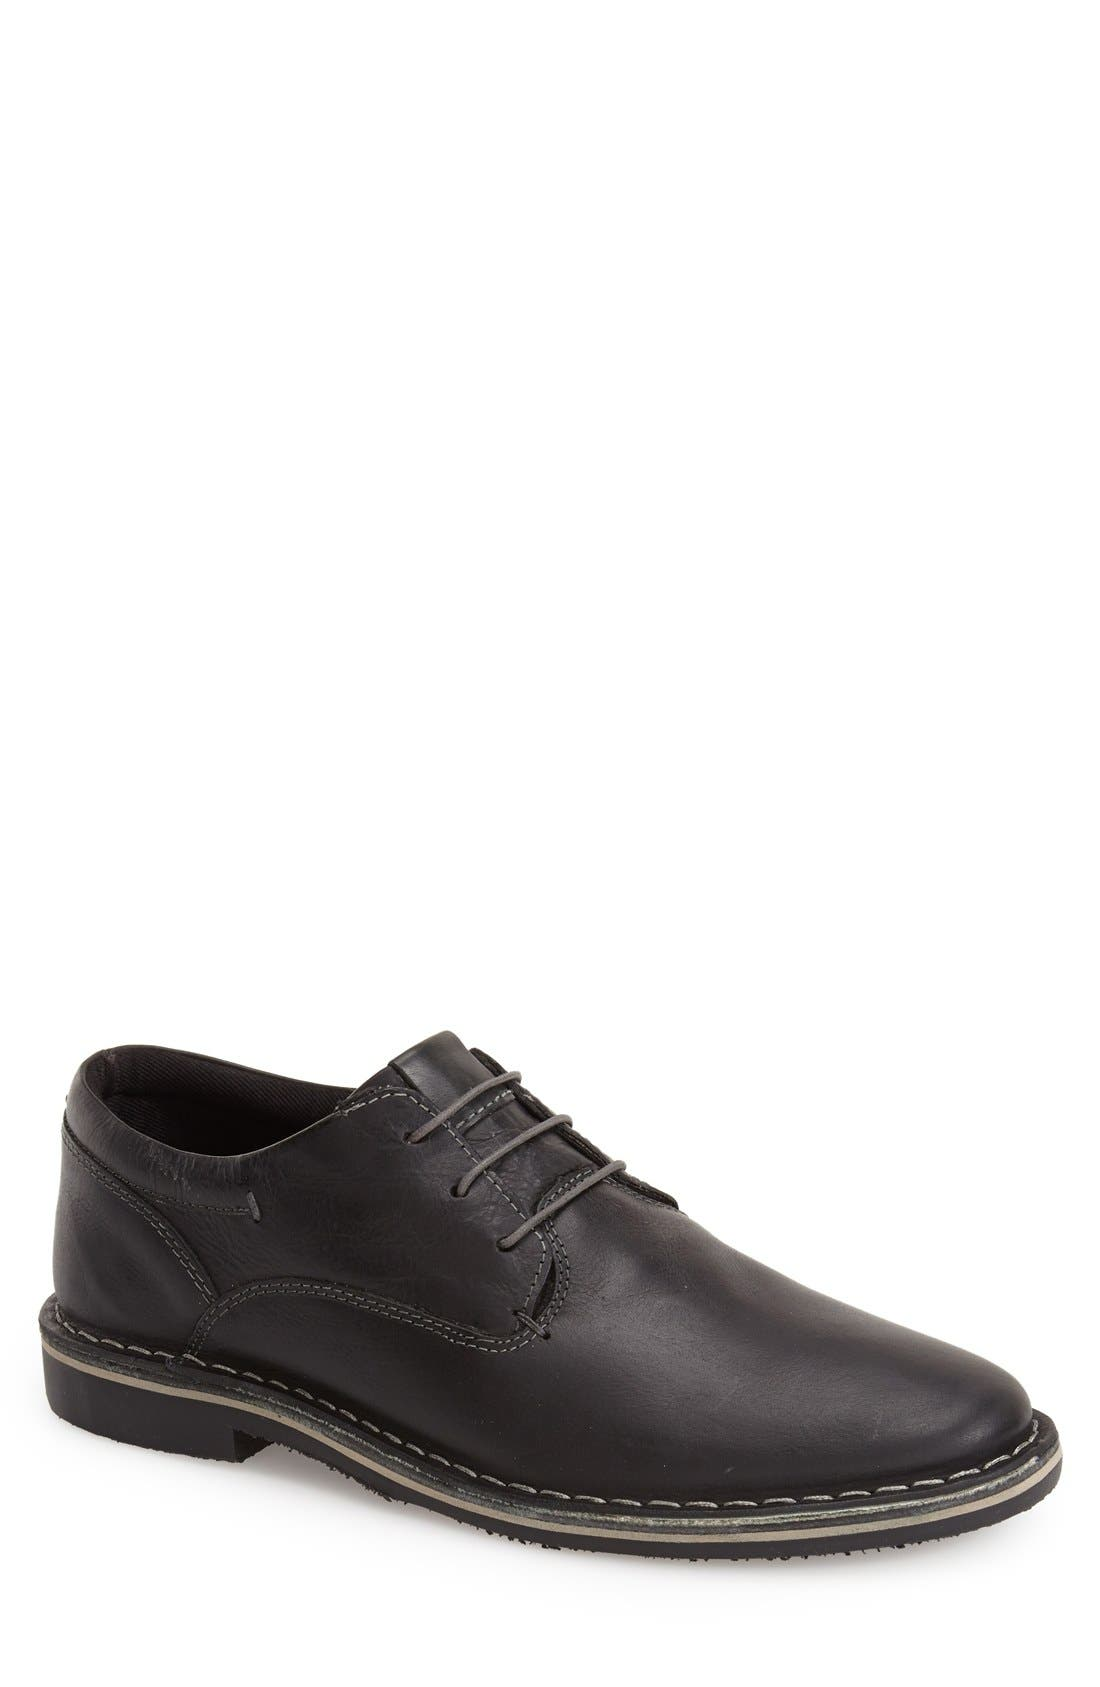 STEVE MADDEN Harpoon Derby